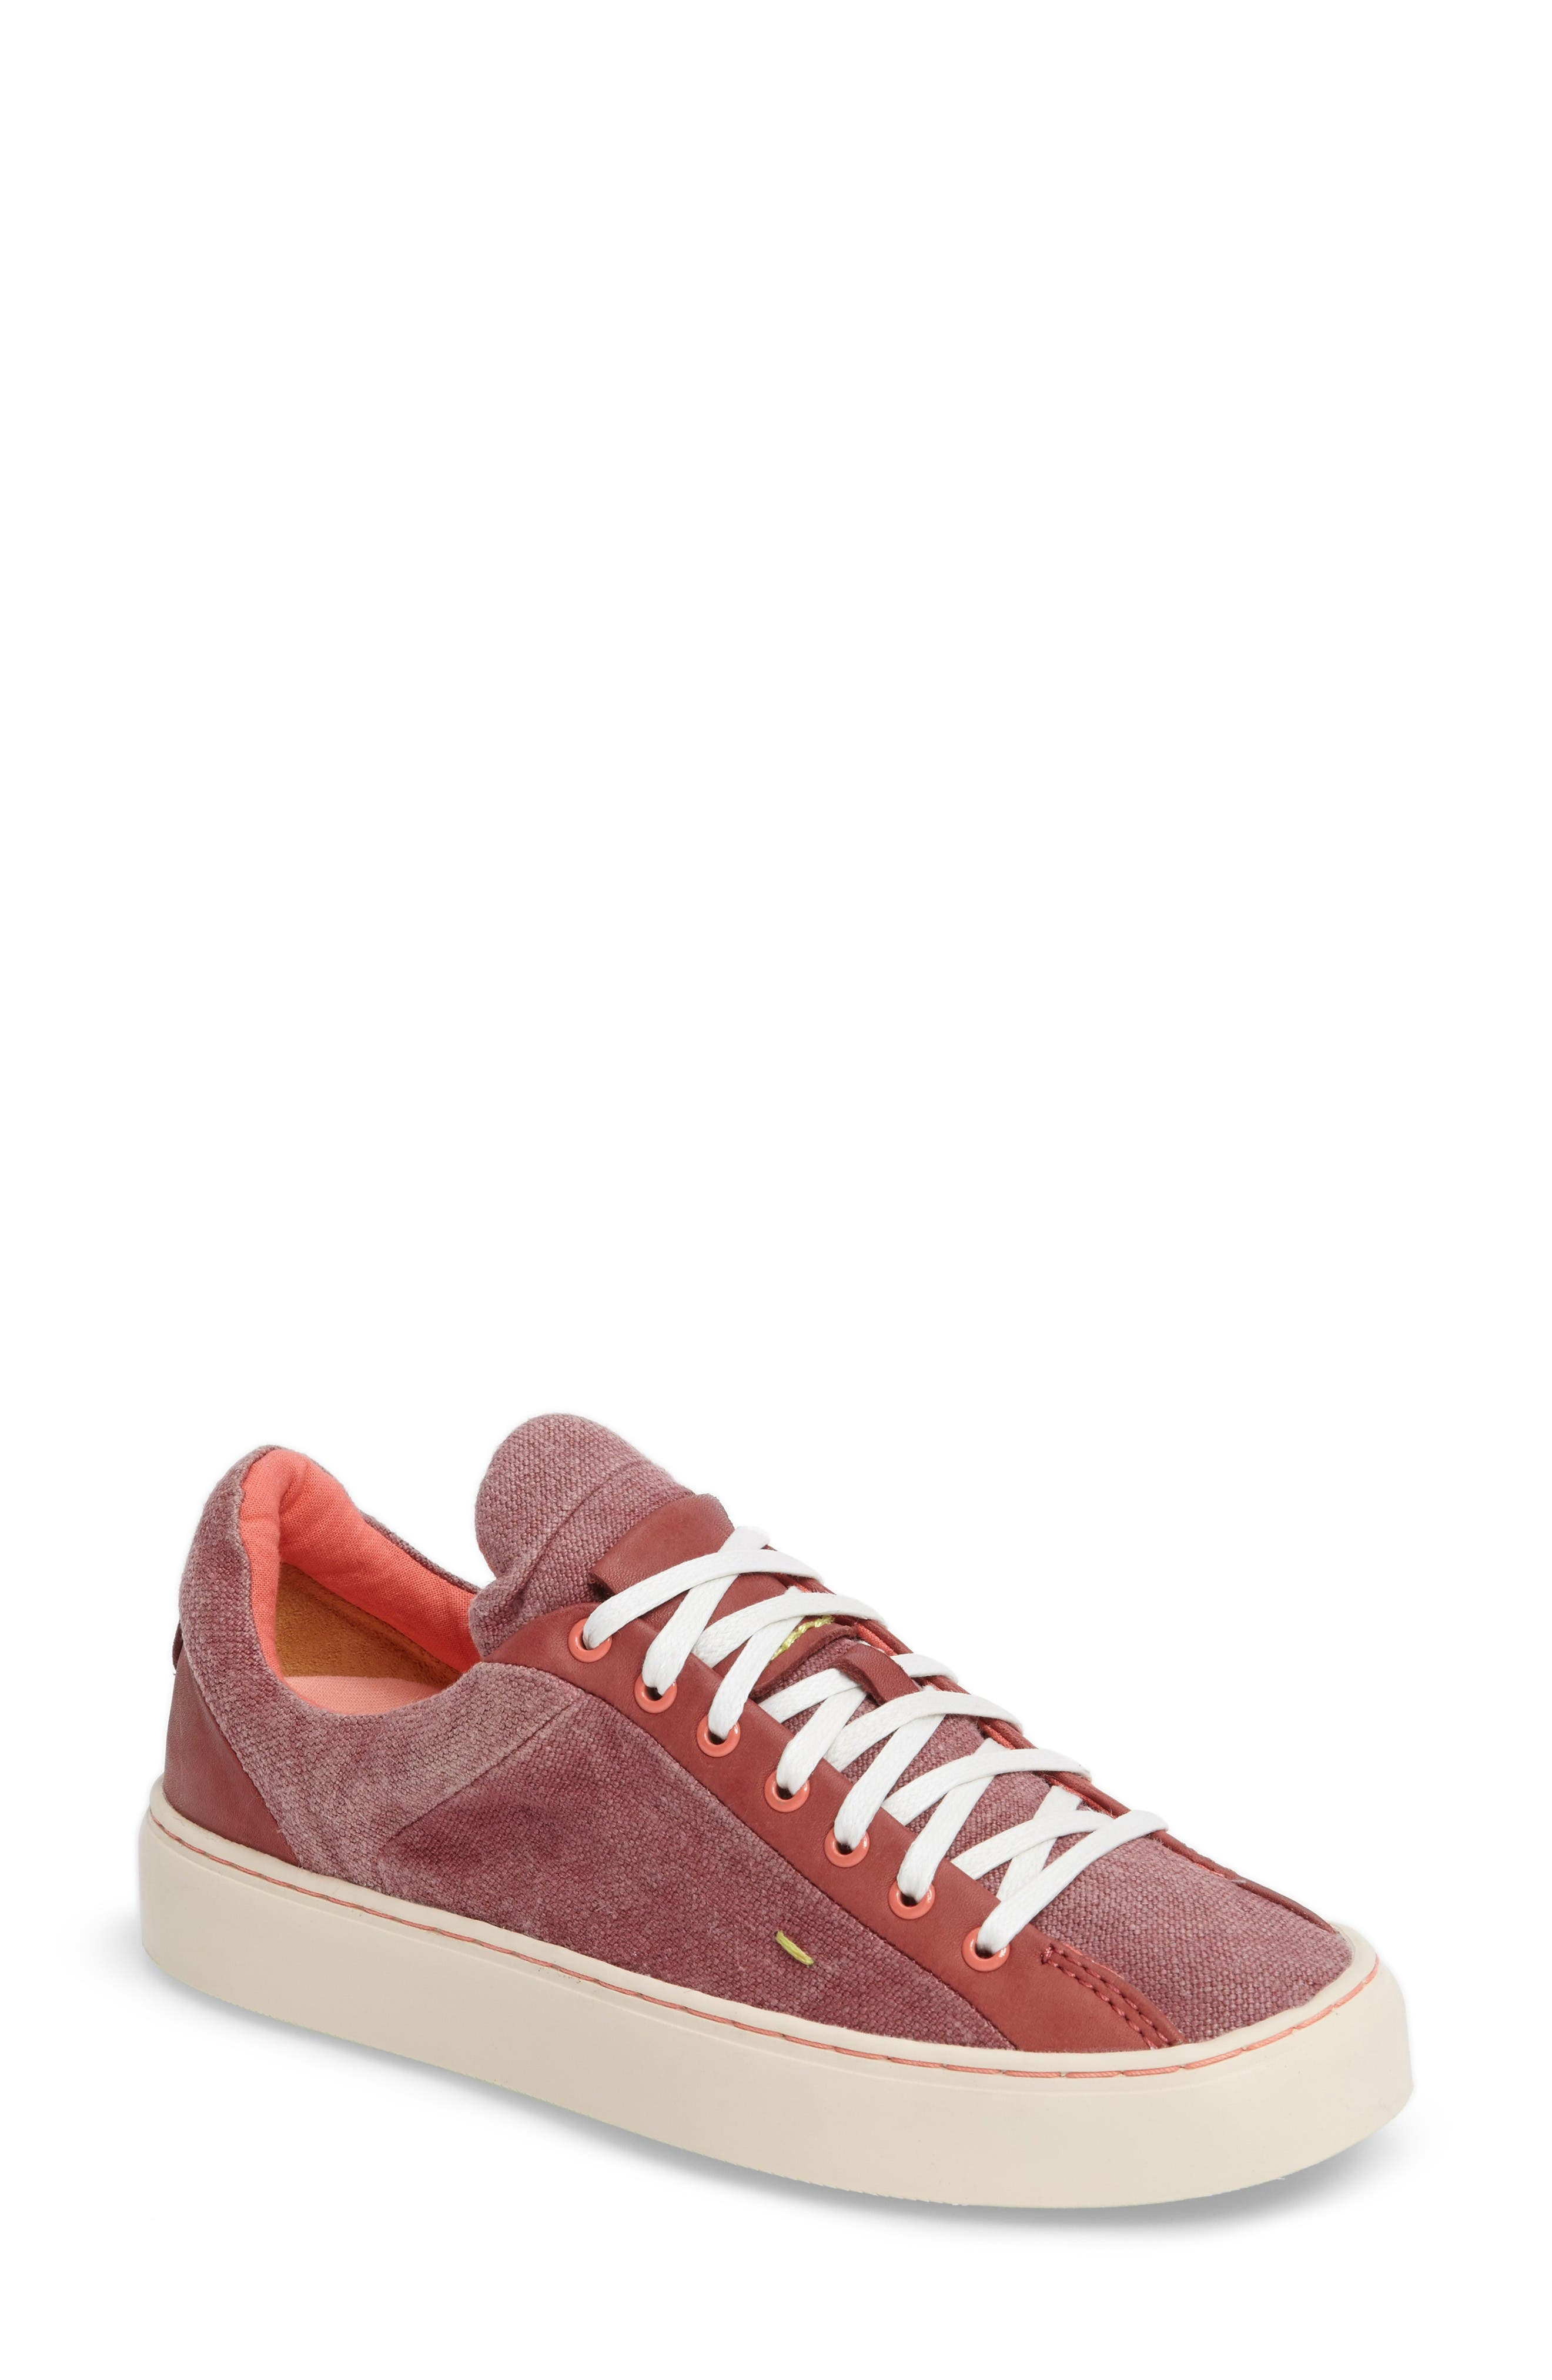 Somerville Sneaker,                             Main thumbnail 1, color,                             Sandalwood Fabric